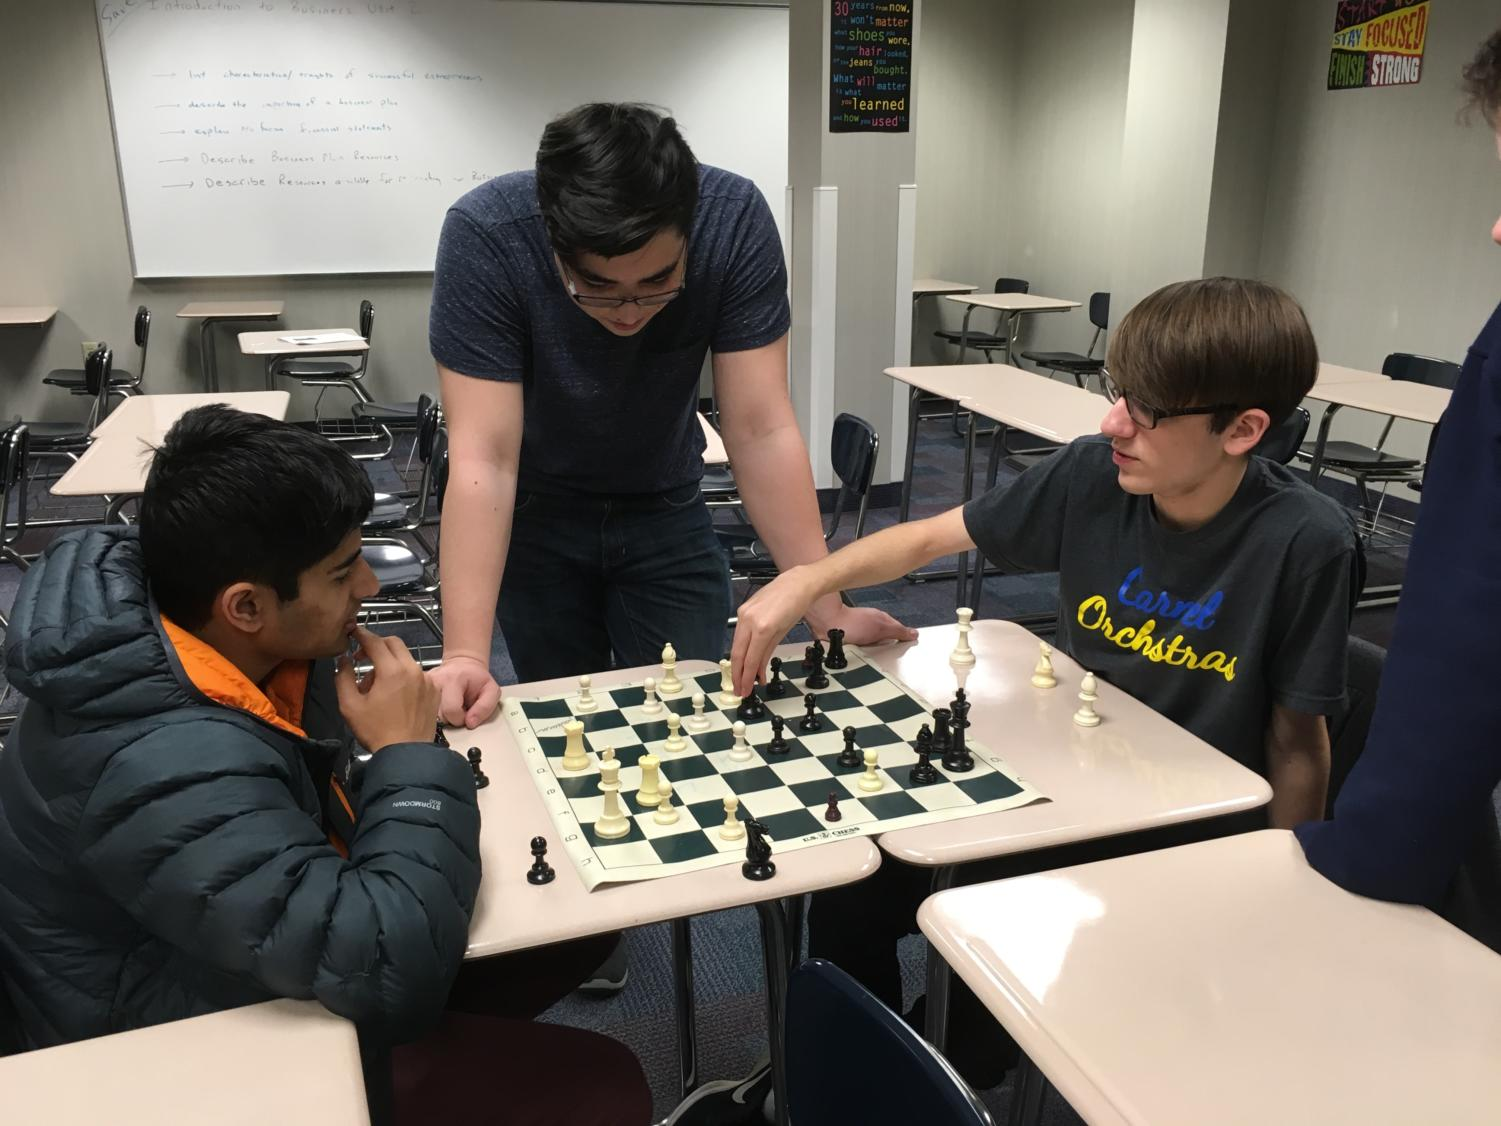 Julian Knudson, president of the club and senior, oversees a game between Rohil Senapati and Owen Eckart. Knudson said he has finalized the A, B, and C teams for the tournament, which he compiles based on skill demonstrated by students throughout the year.